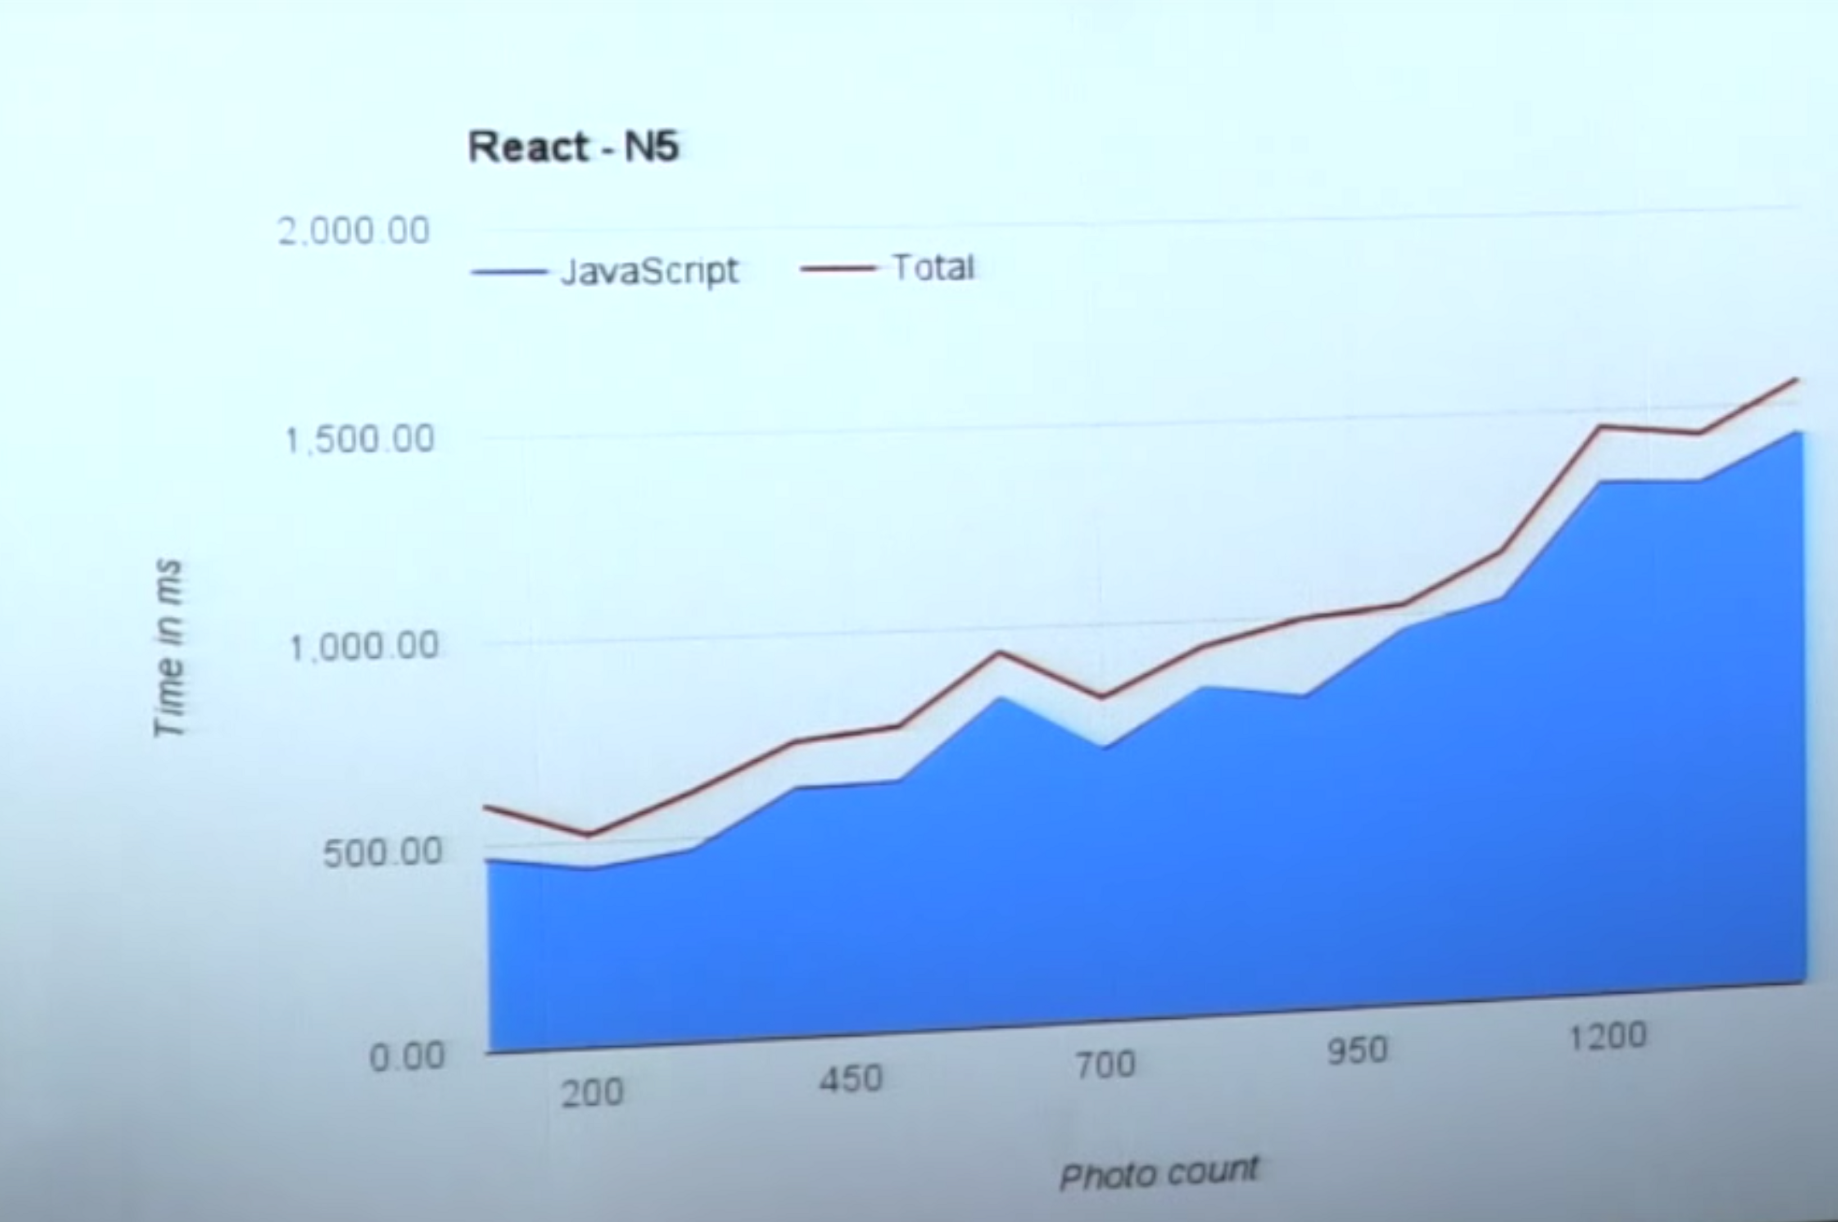 So React is getting slower with increasing number of elements?